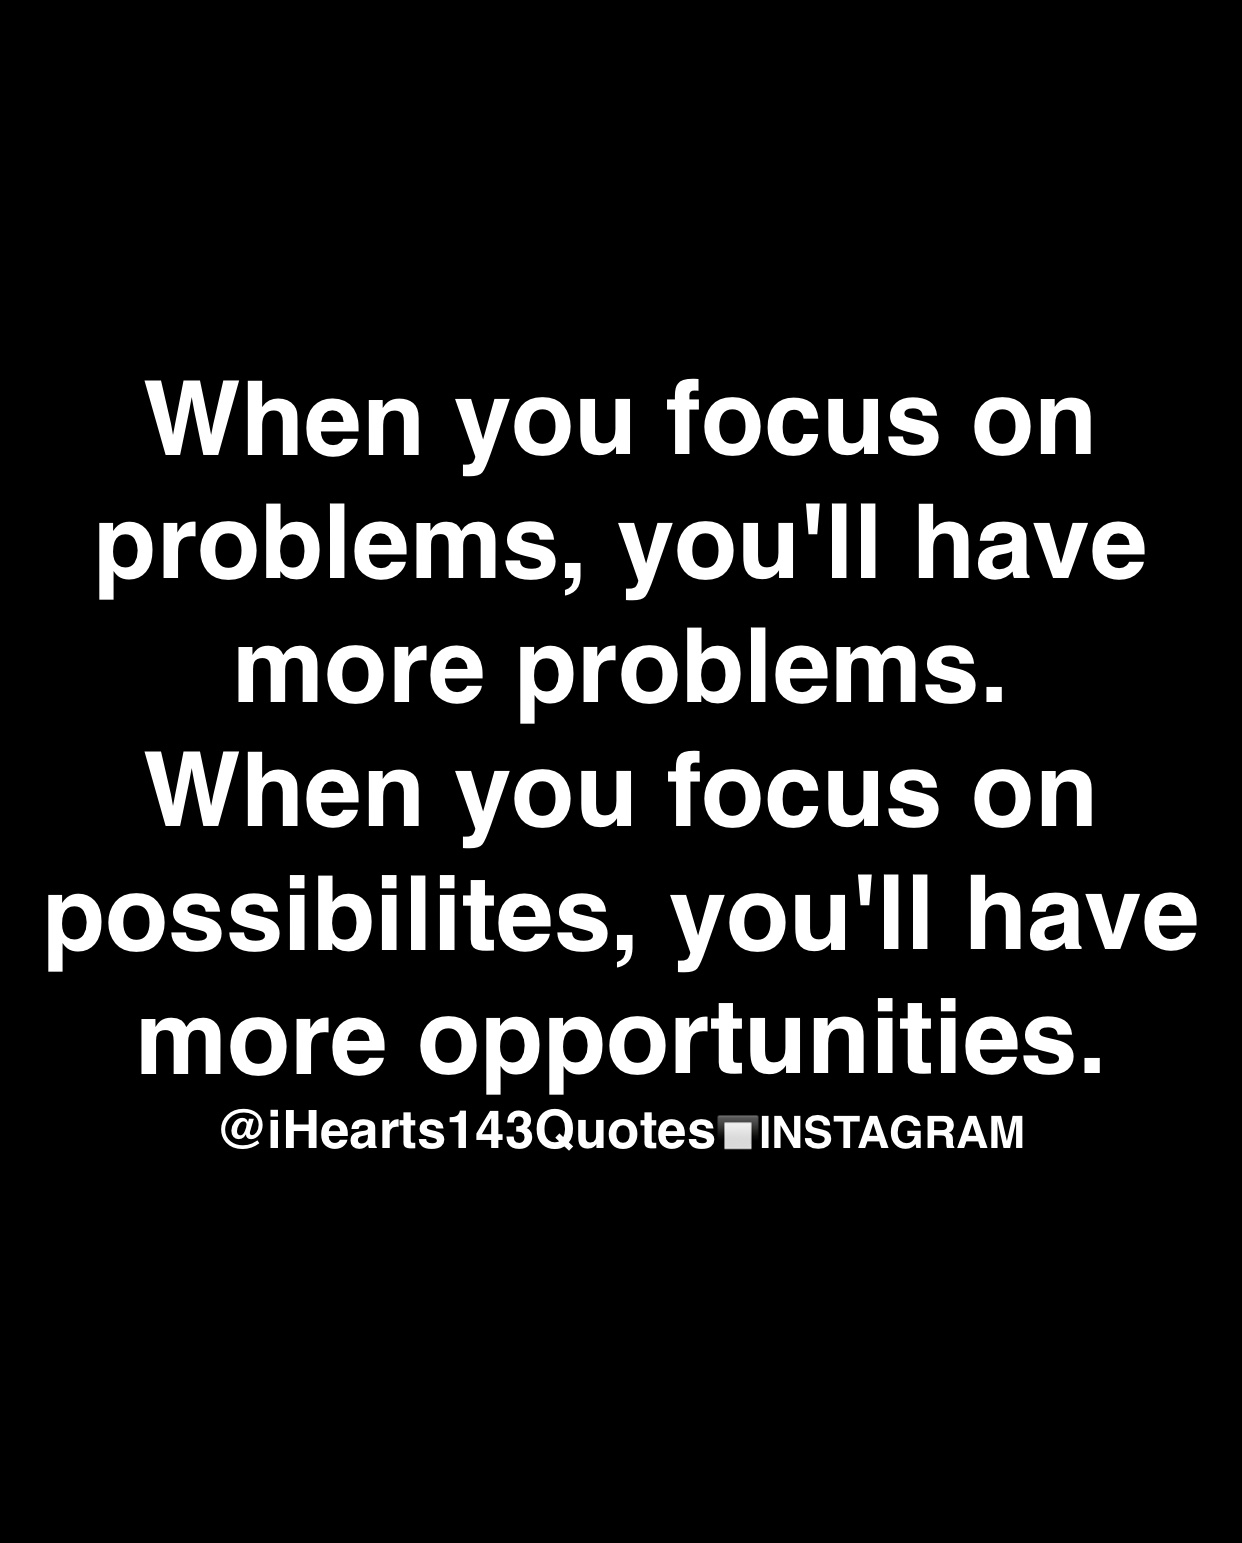 Inspirational Quotes Daily Daily Motivational Quotes  Ihearts143Quotes